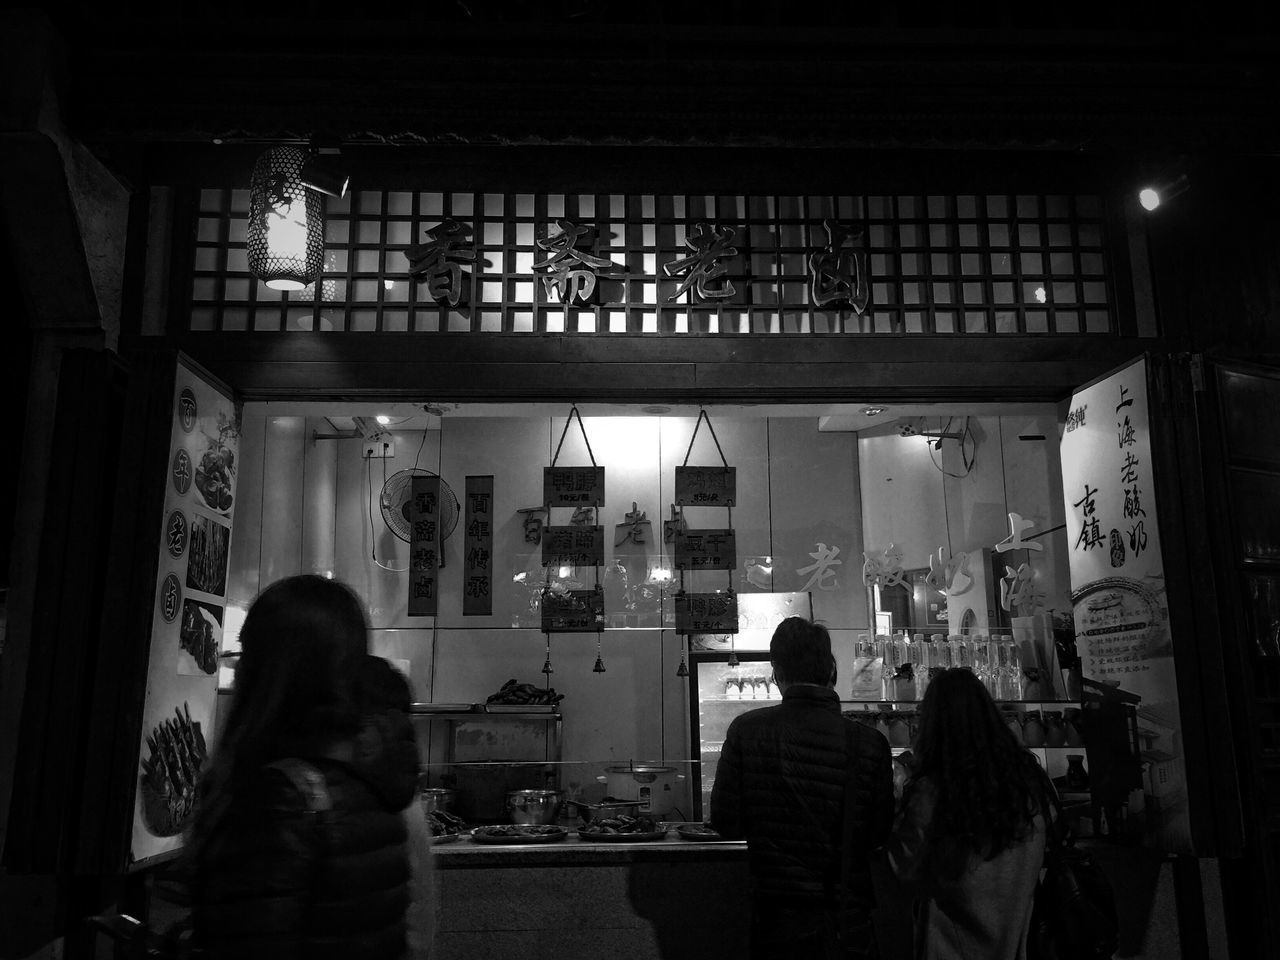 Real People Bnw Streetphotography Street Photo Night View Bnw_life My Black & White Photography EyeEm Gallery EyeEm Taiwan Daily Life Still Life Blackandwhite Eye4photography  Night Outdoors Street Taking Photos The City Light